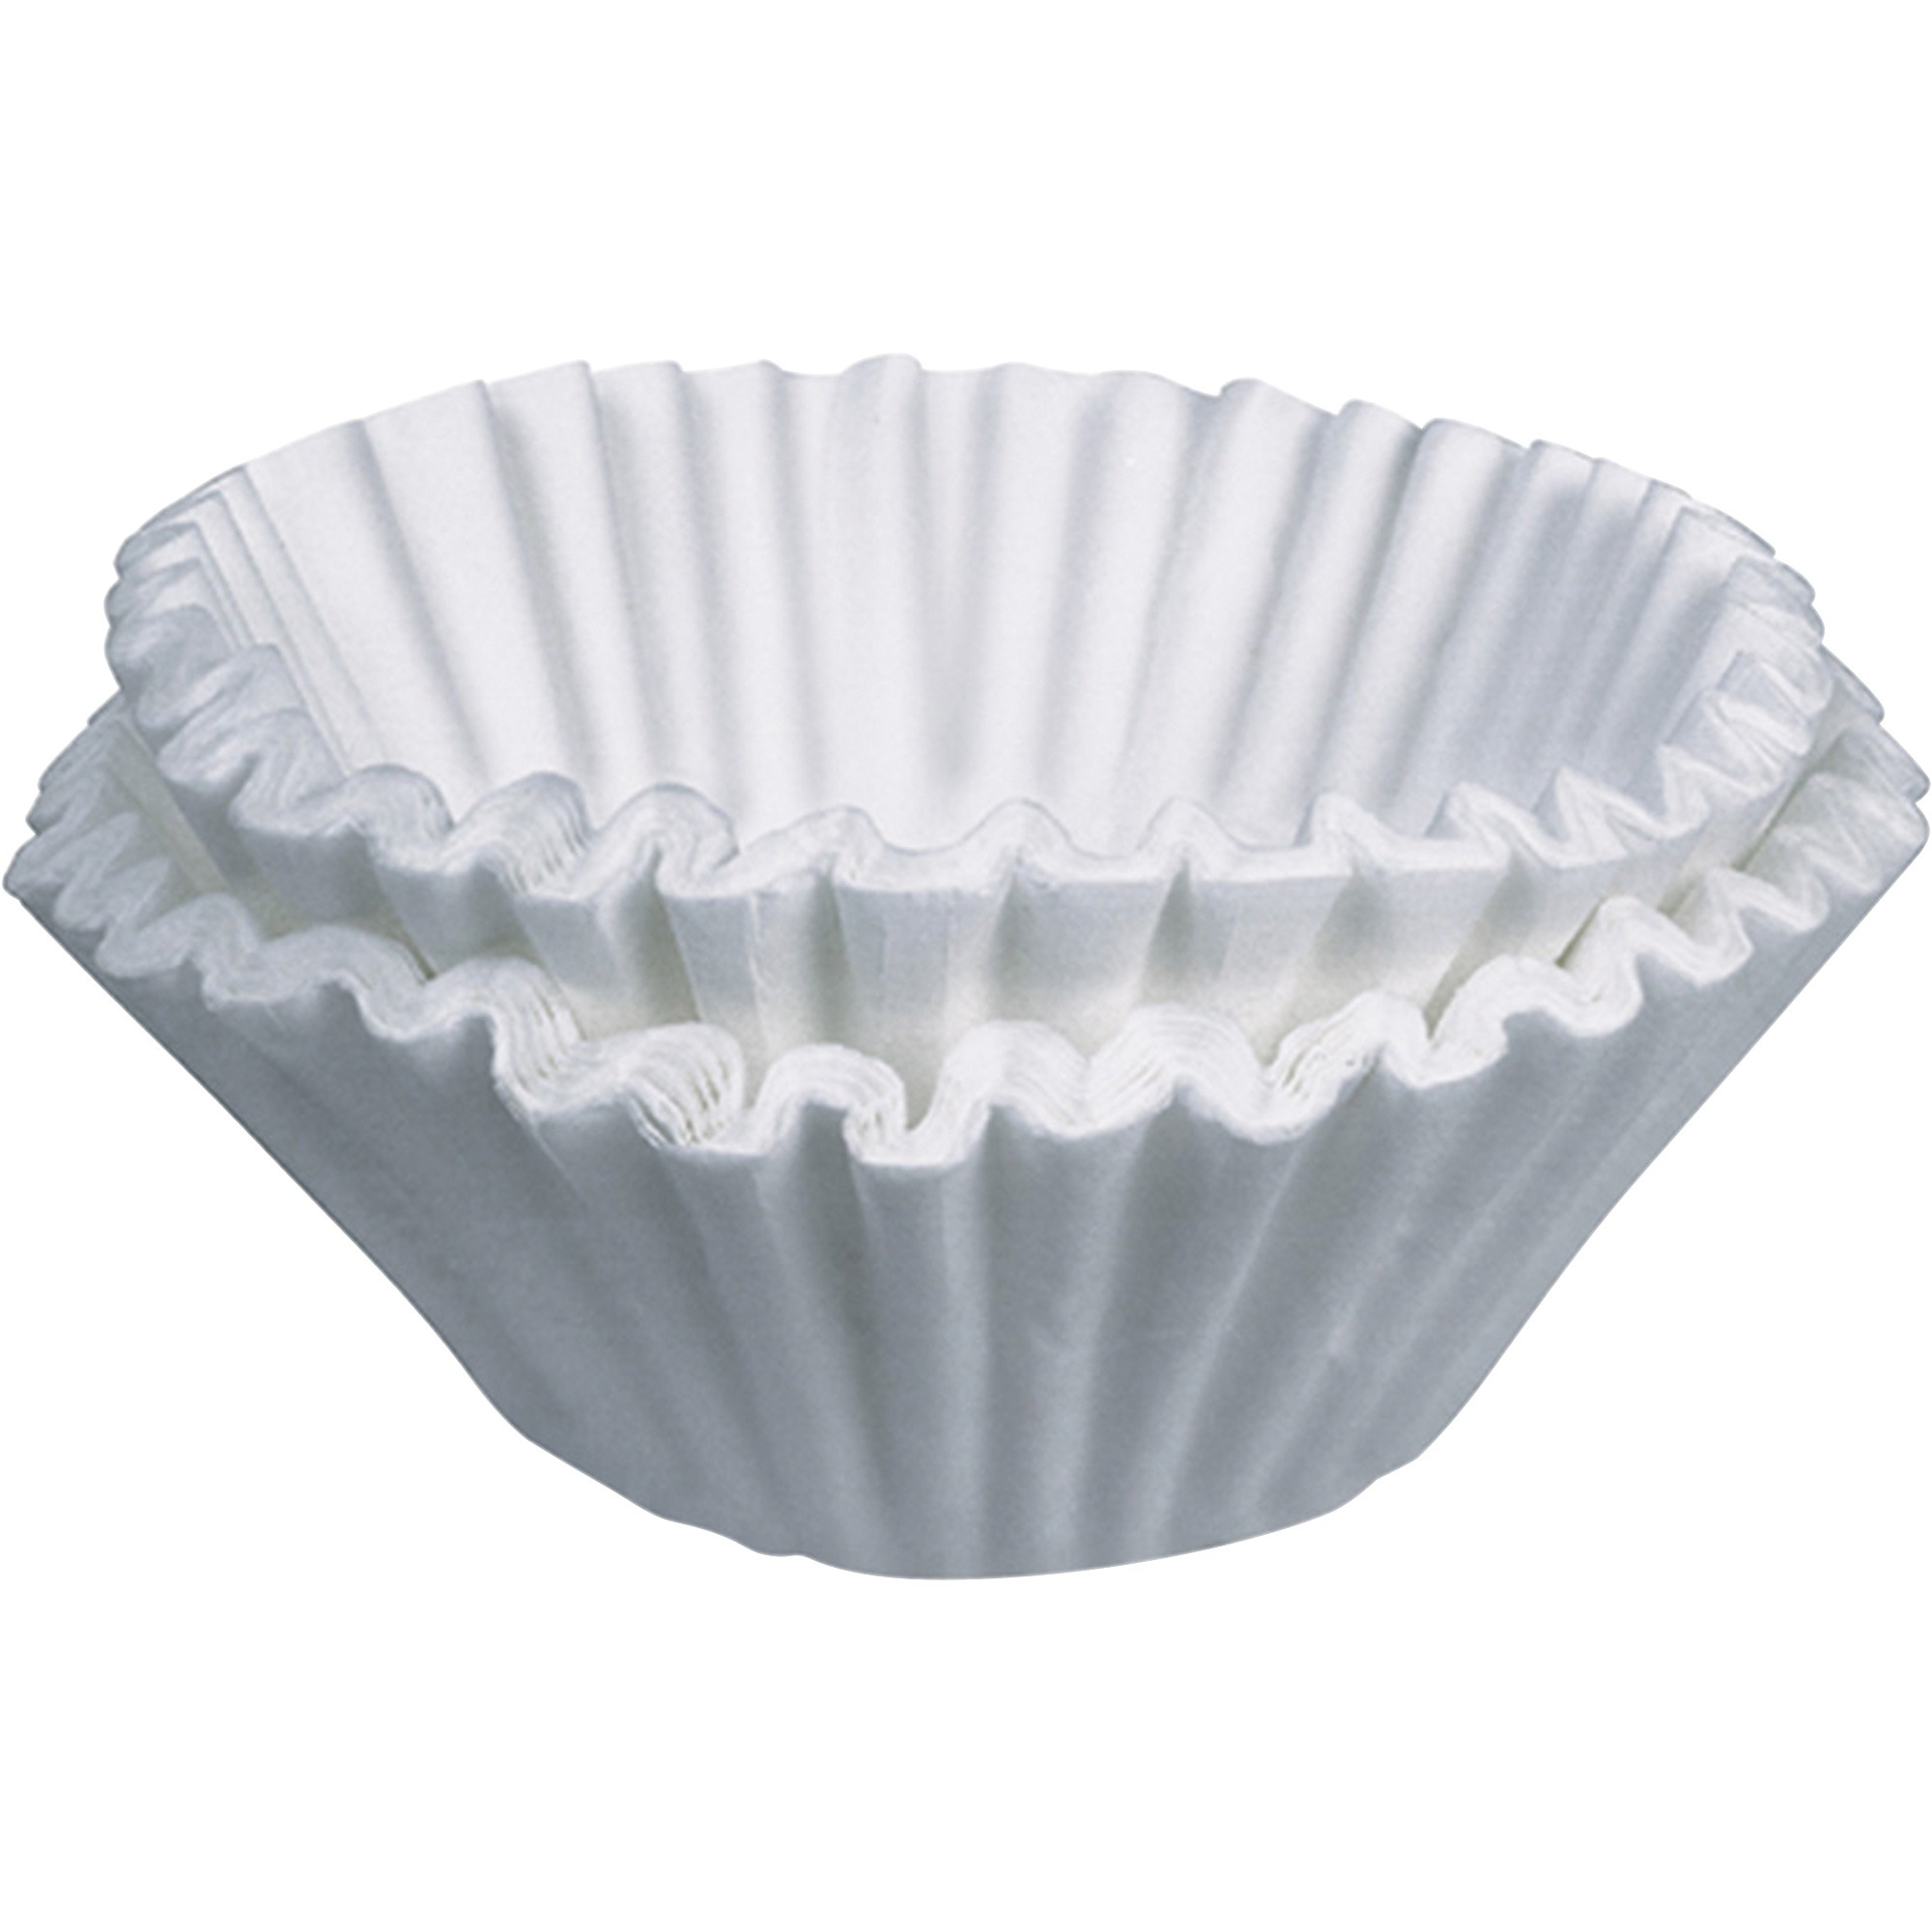 BUNN, BUNBCF250,Commercial Coffee Filters, 250 / Box, White